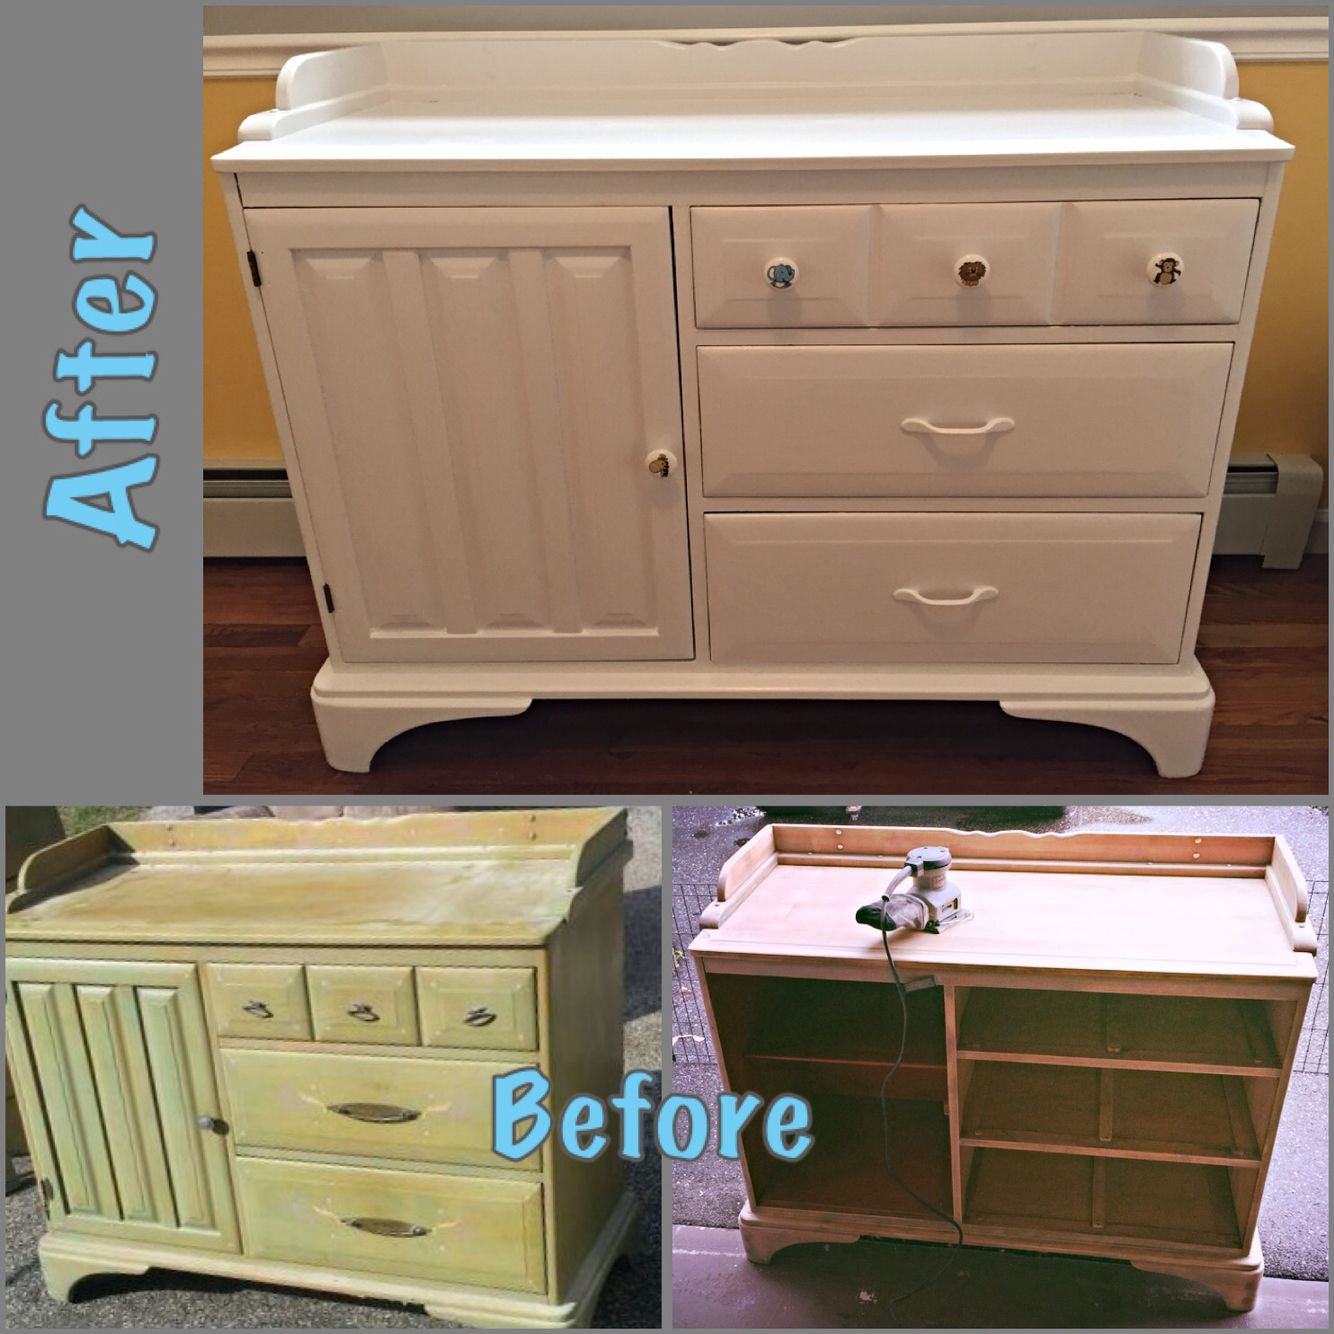 Refinished Old Dresser / Cabinet To Upcycled Baby White Changing Table For  Nursery/ Baby Room DIY